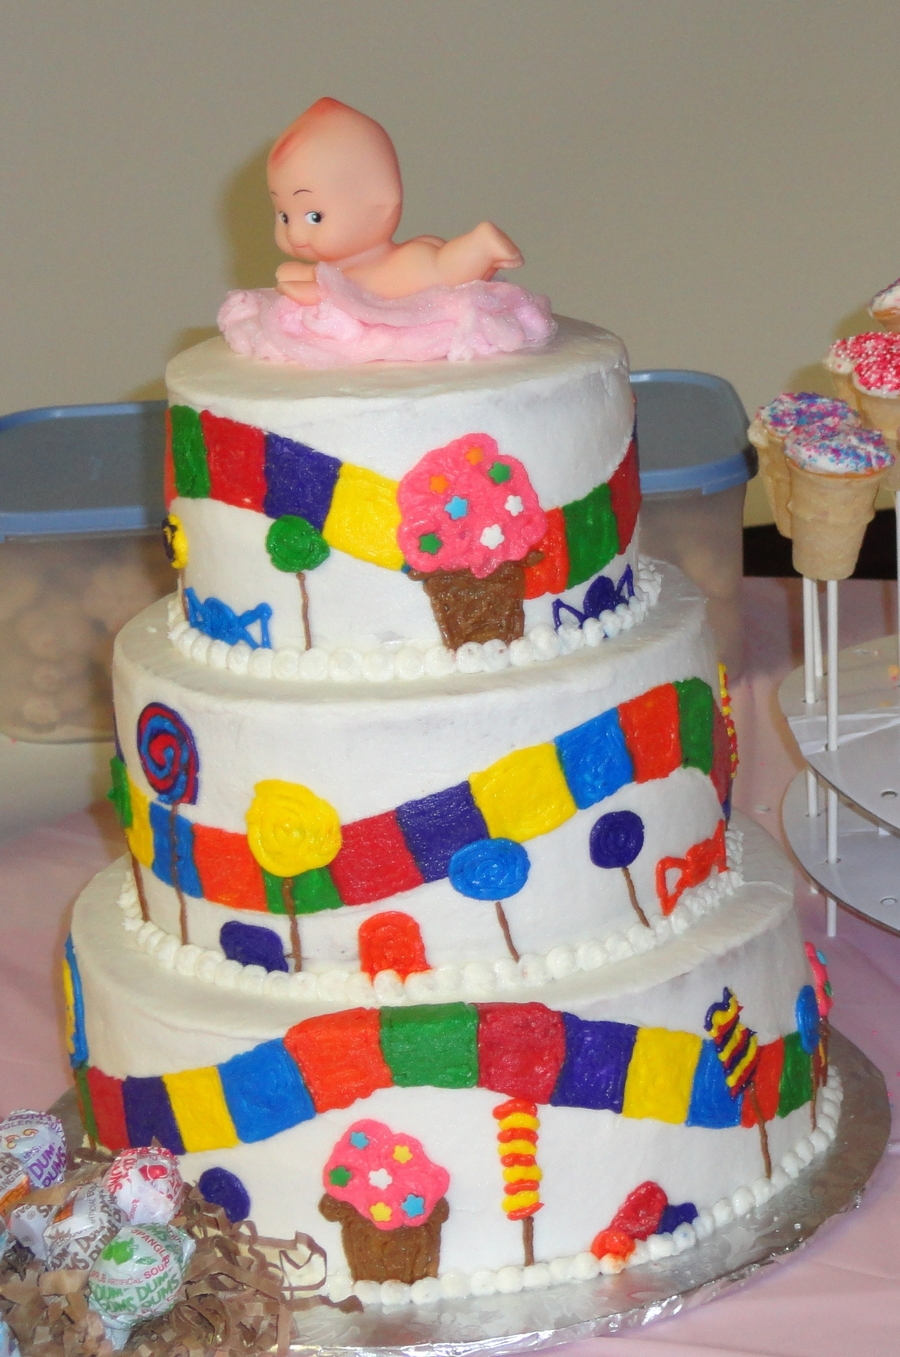 Amazing Candyland Theme Baby Shower Cake On Cake Central